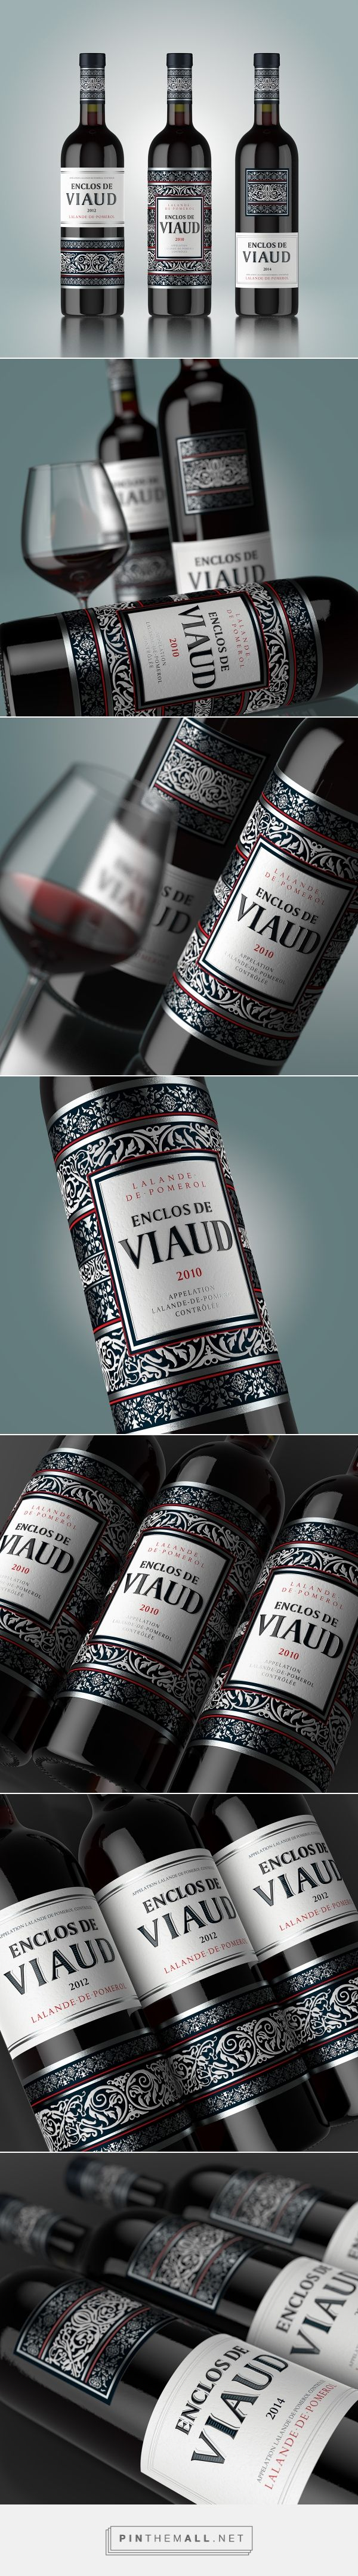 ENCLOS DE VIAUD Wine Packaging by Shumi Love Design | Fivestar Branding Agency – Design and Branding Agency & Curated Inspiration Gallery